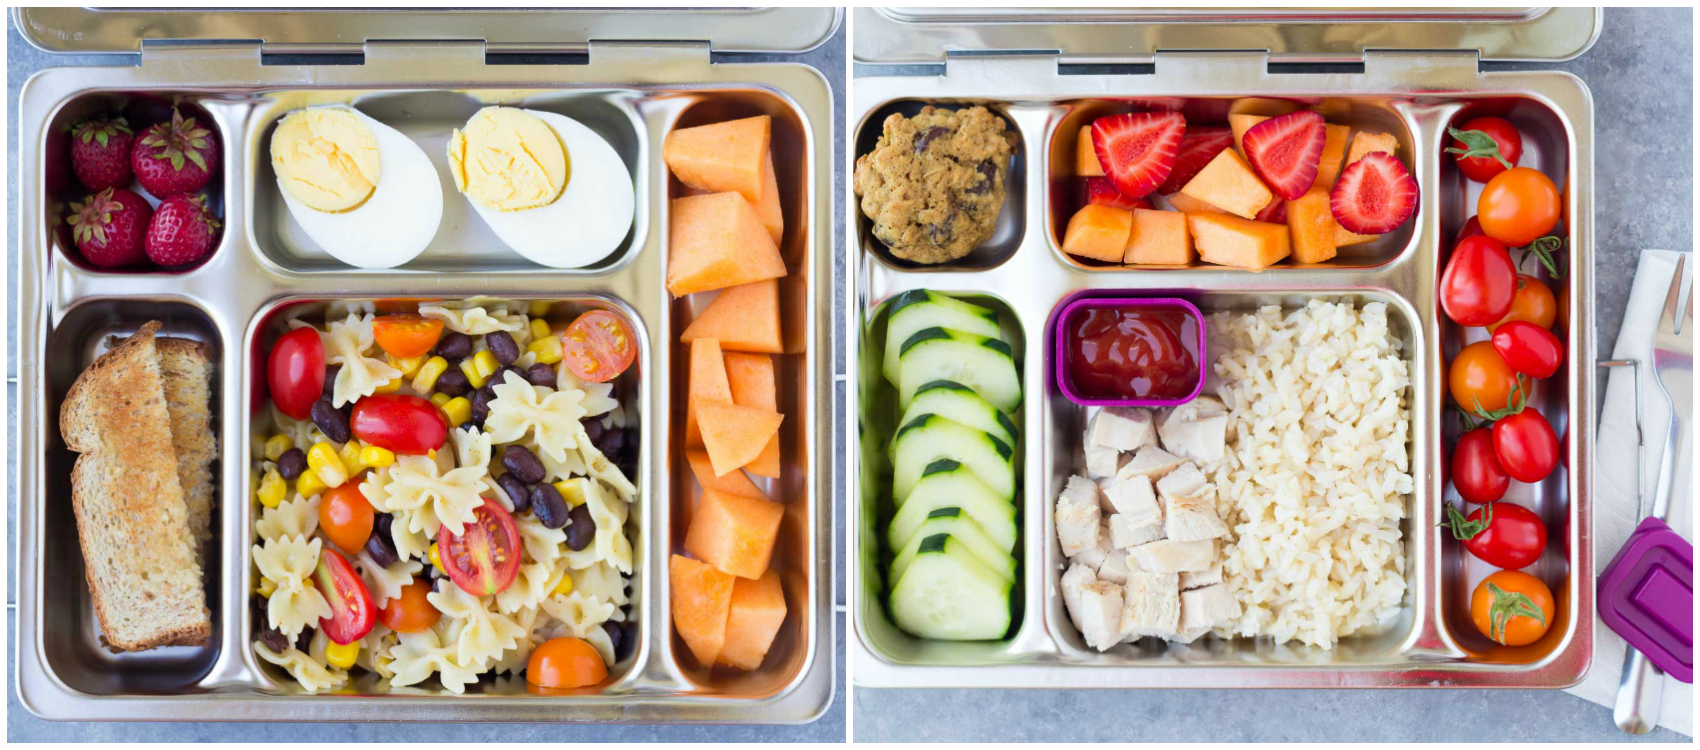 healthy school lunch ideas with pasta, eggs cantaloupe, tomatoes strawberries, chicken and rice and more